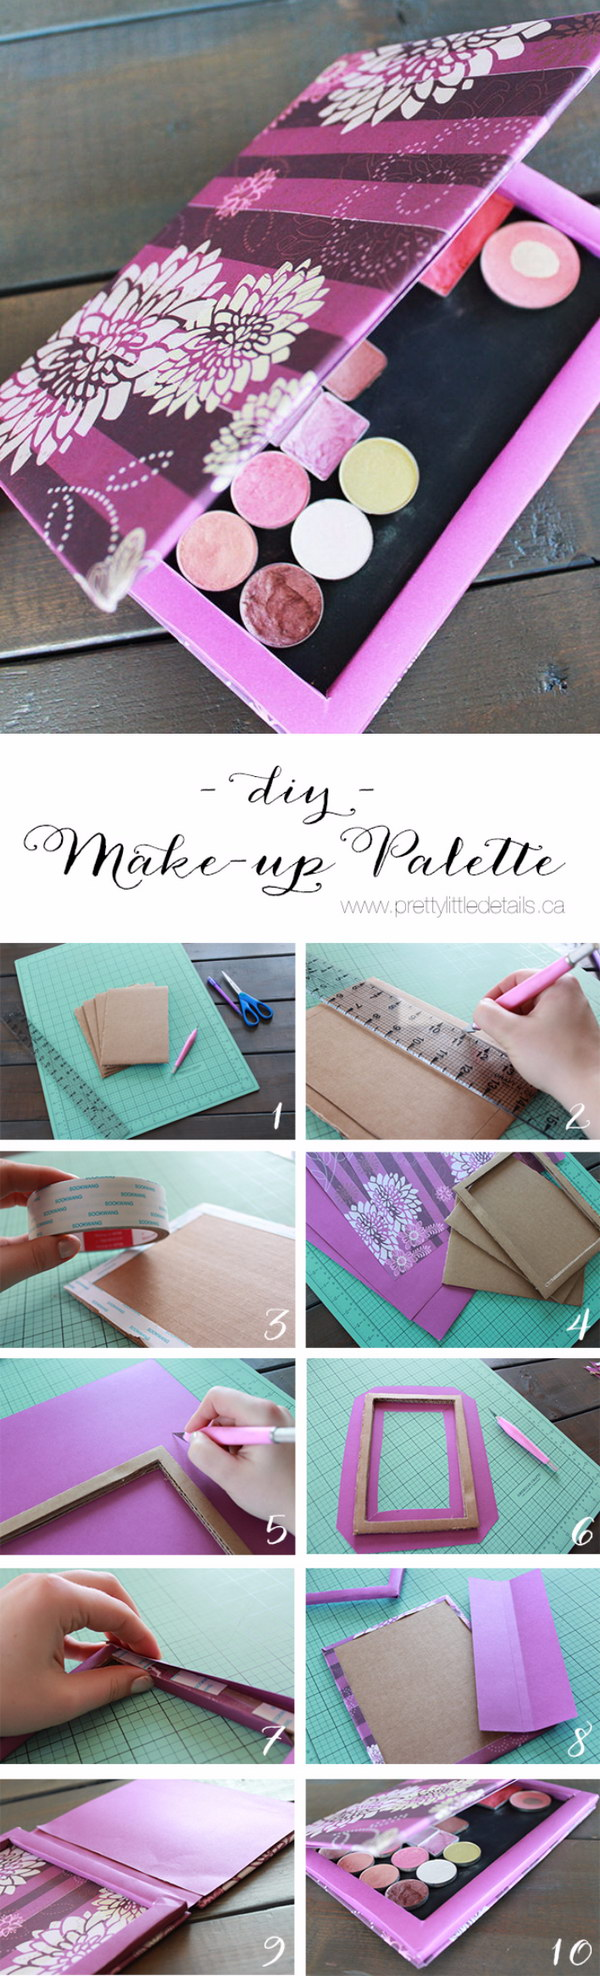 DIY Makeup Palette.